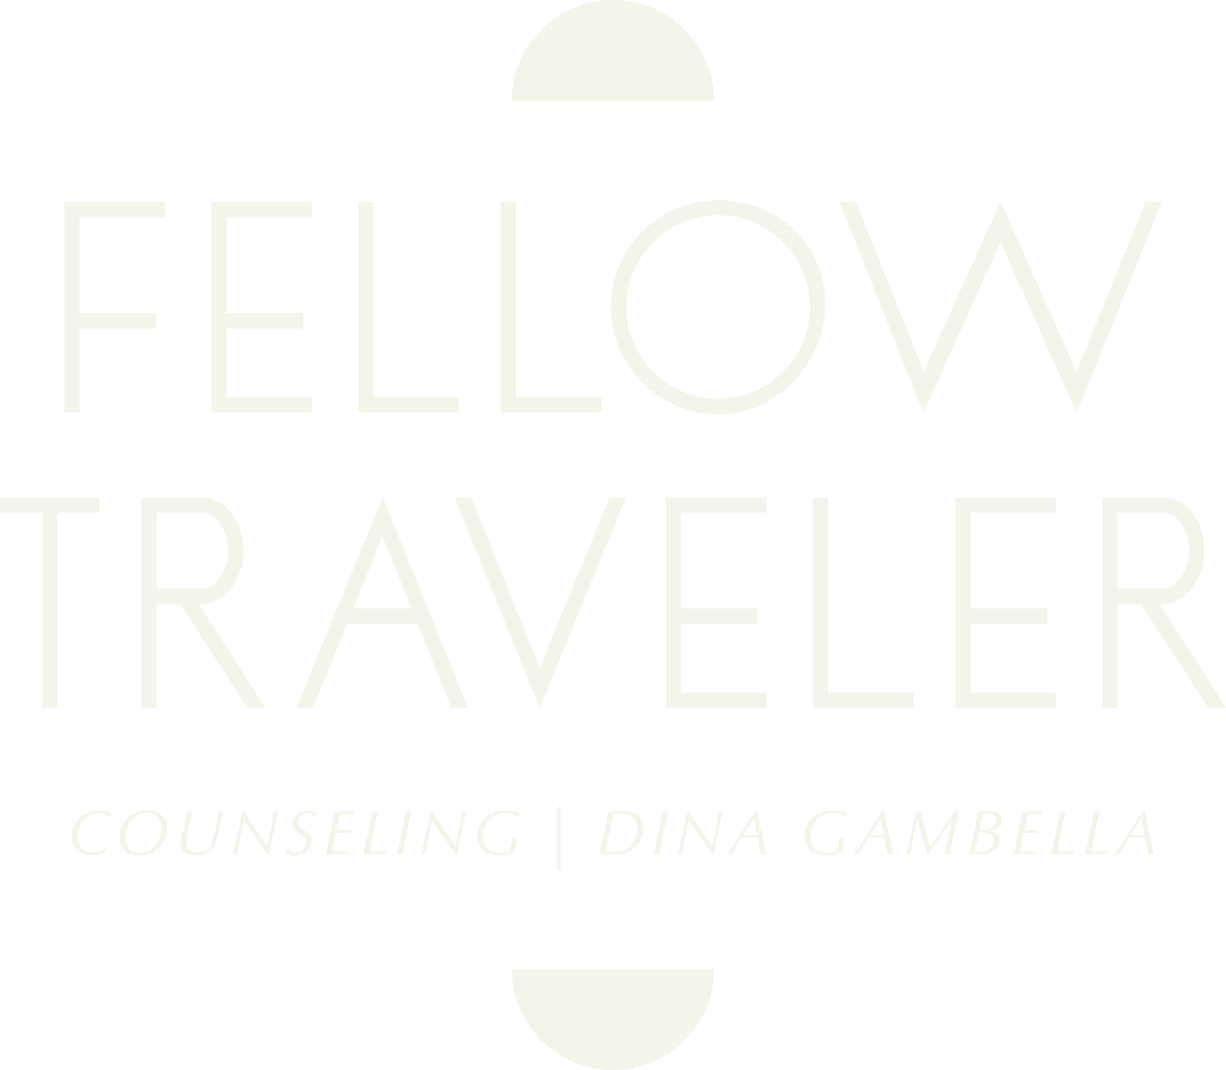 Fellow Traveler Logo